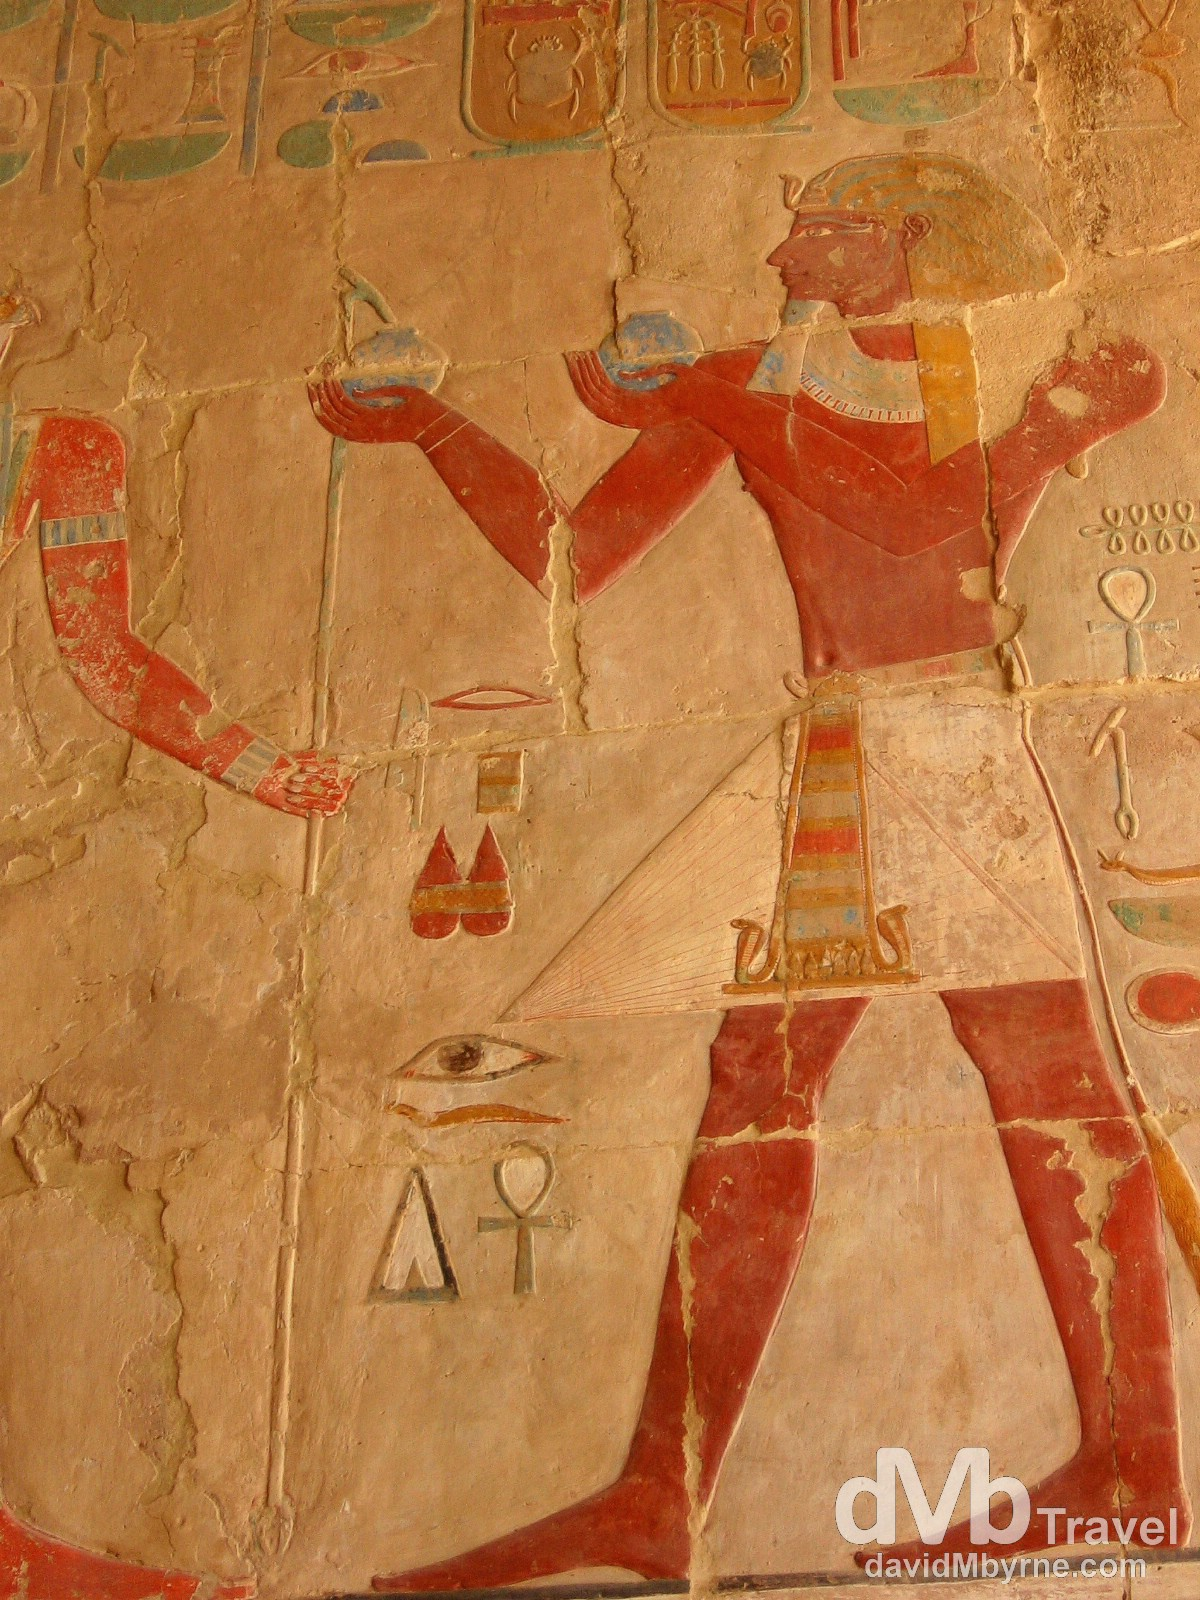 Ancient Egyptian symbols on the walls of the Funerary Temple of Hatshepsut in Luxor, Egypt. April 12th 2008.